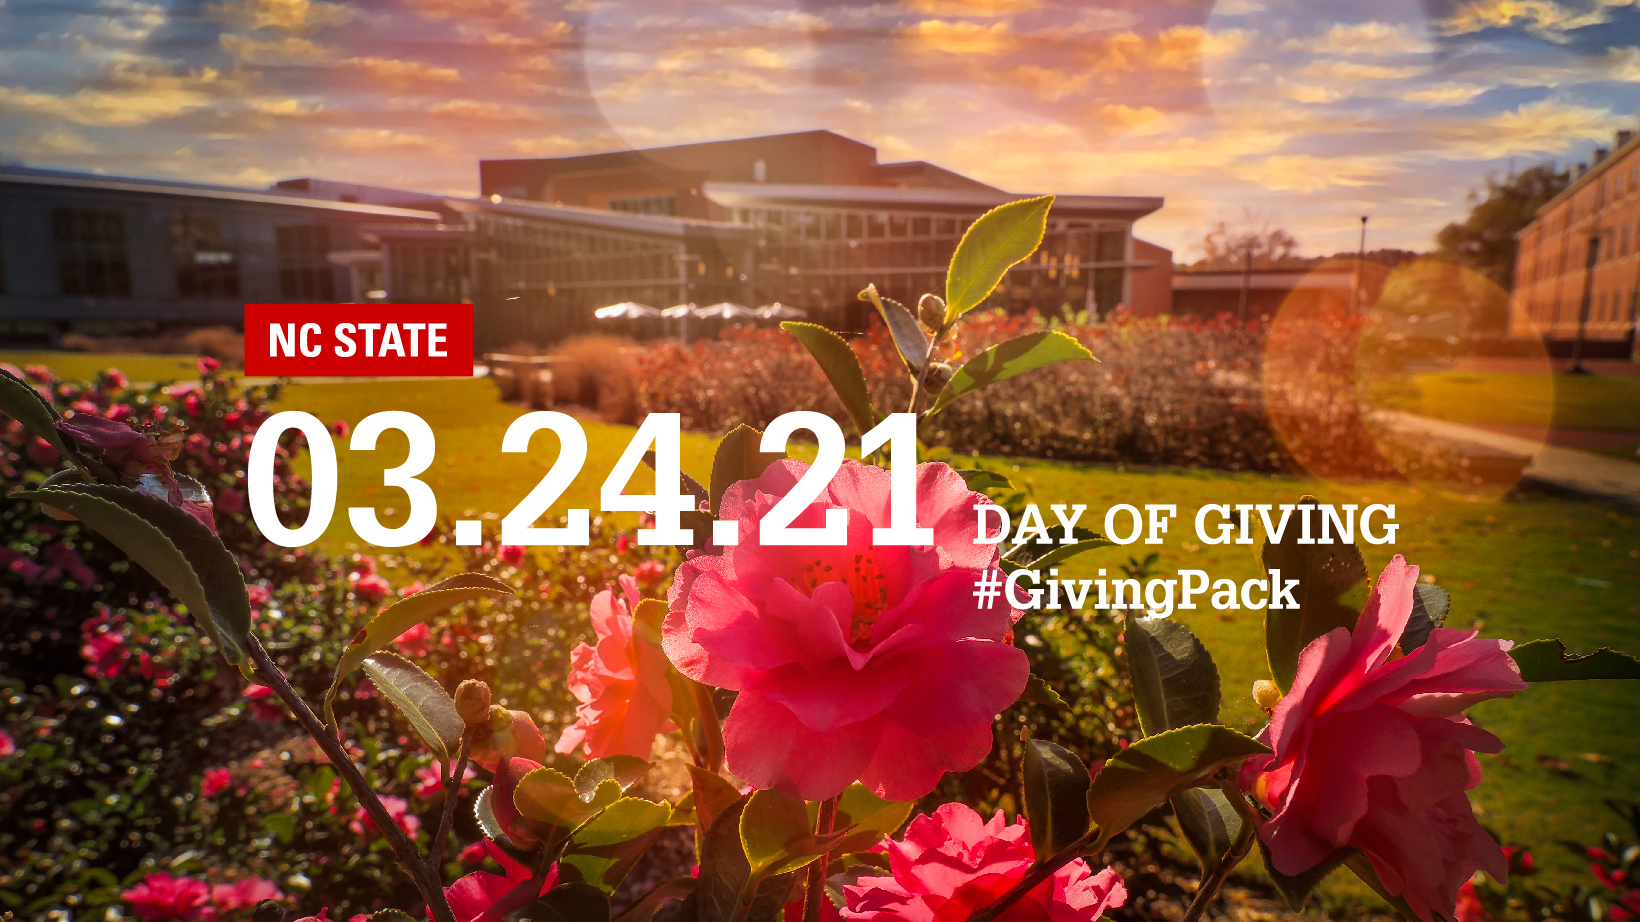 Facebook cover photo with image of flowers at the Talley Student Union courtyard and text reading NC State 03.24.21 Day of Giving Hashtag Giving Pack